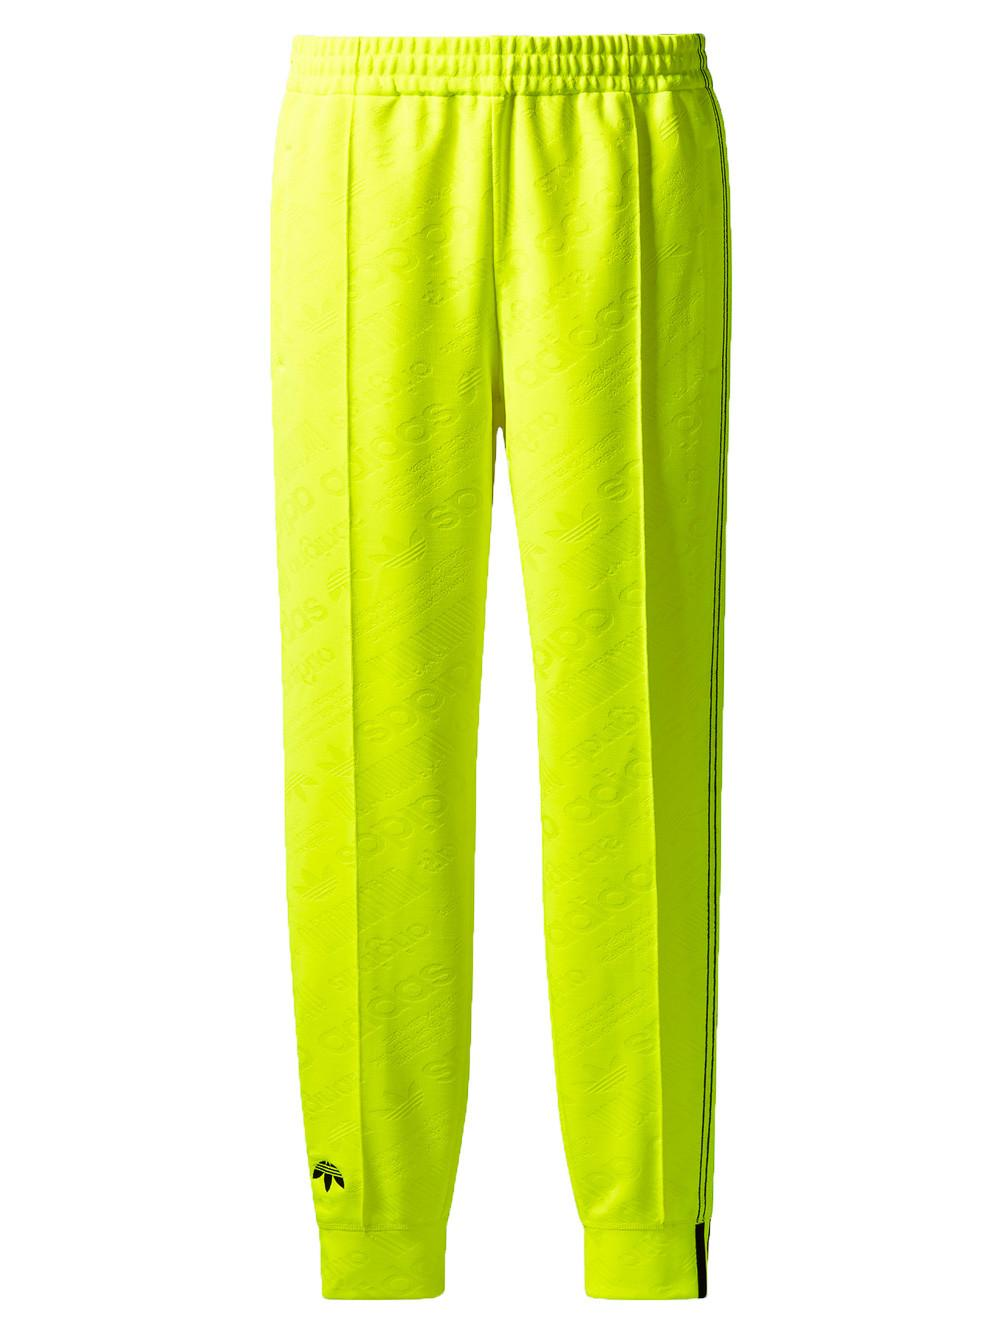 Adidas Originals By Alexander Wang Adidas By Alexander Wang Women's Yellow Jacquard Jogging Trousers In In Collaboration With Alexander Wang